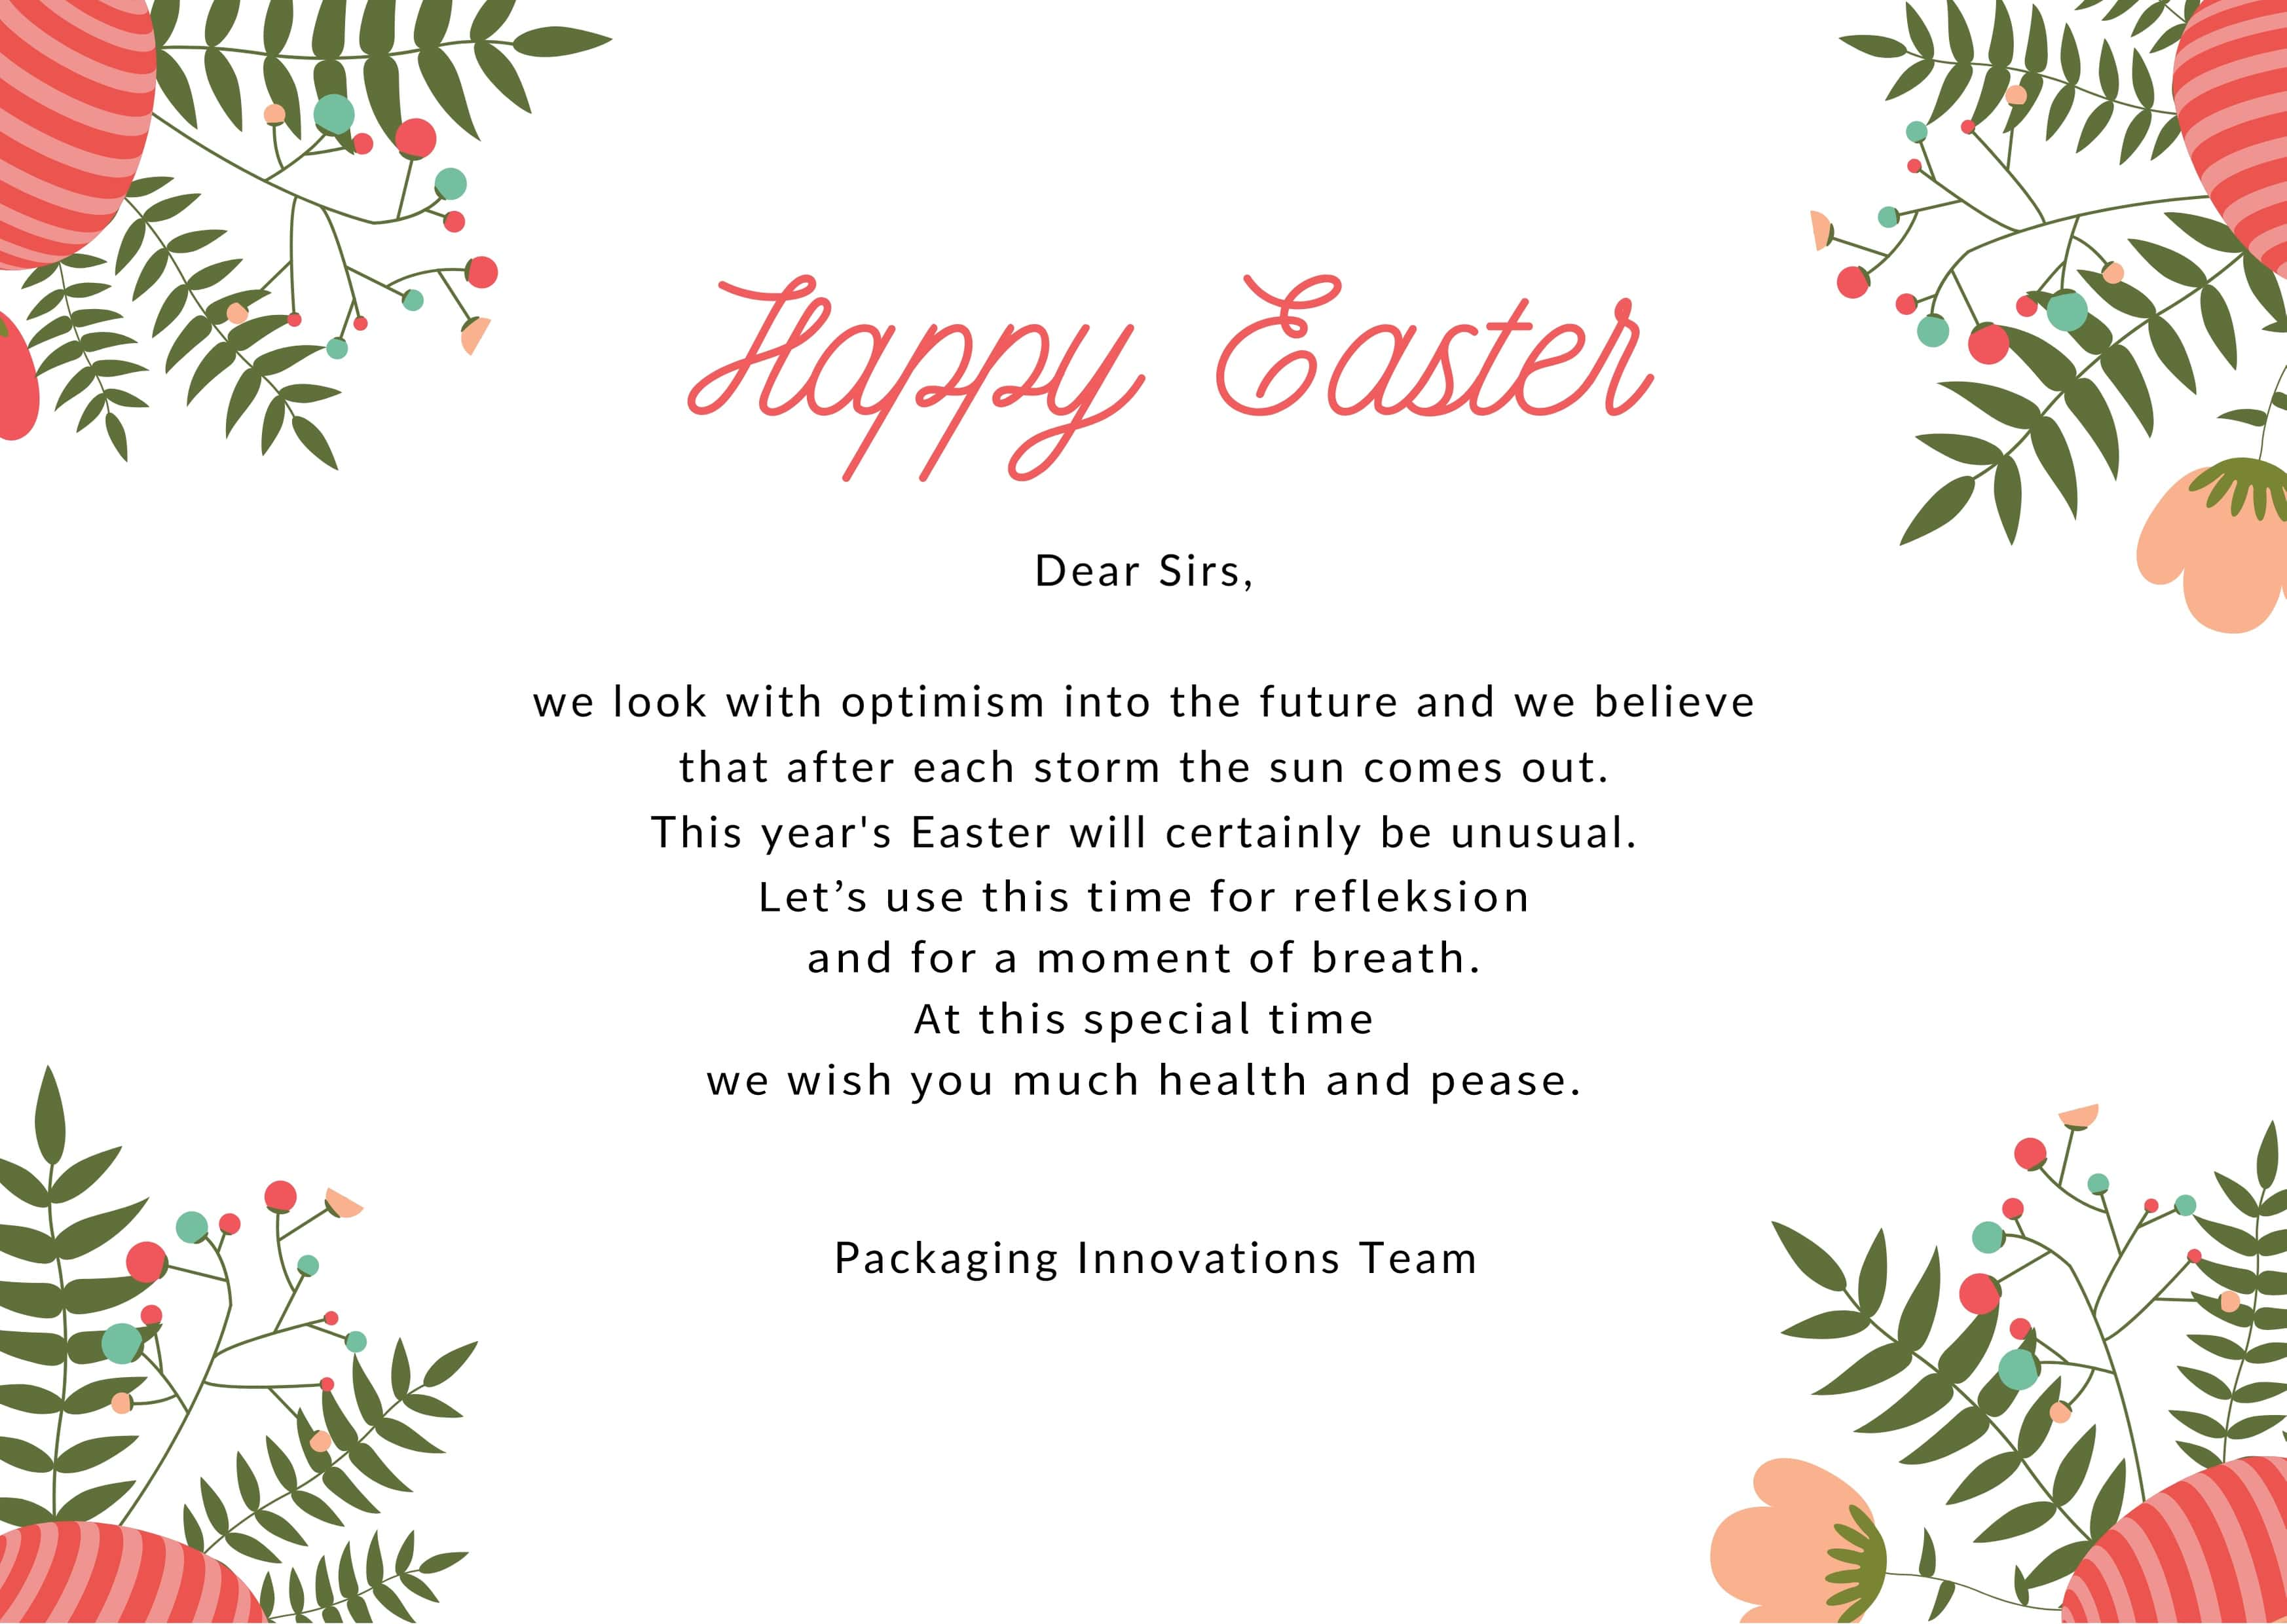 Dear Sirs, we look with optimism into the future and we believethat after each storm the sun comes out. This year's Easter will certainly be unusual. Let's use this time for reflection and for a moment of breath. At this special time we wish you much jealth and pease. The Packaging Innovations Team.